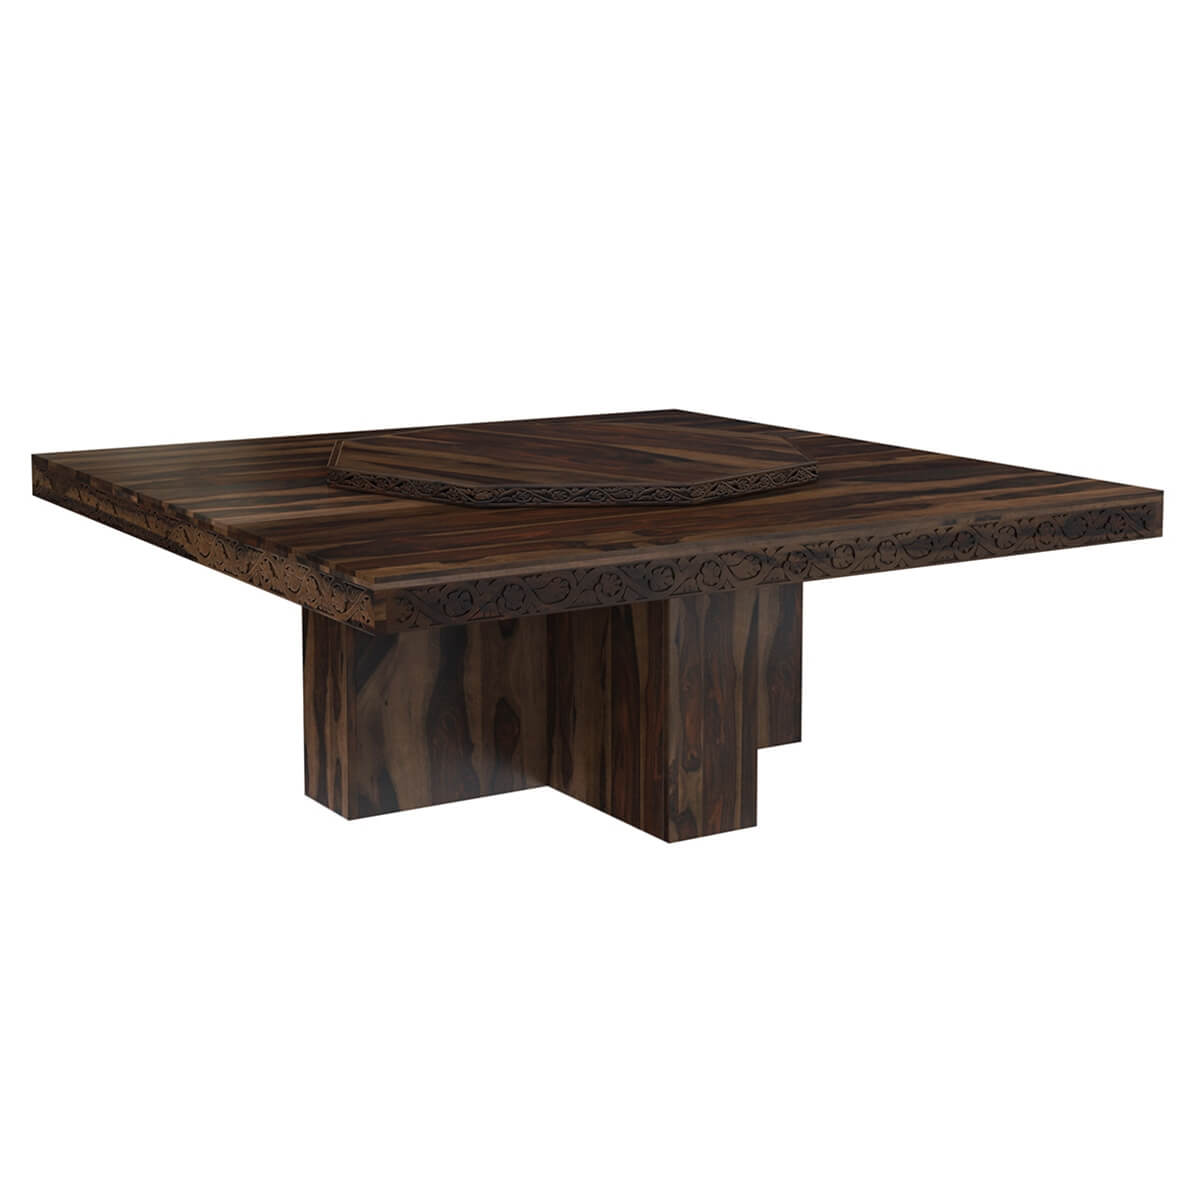 Rustic Solid Wood Large Square Pedestal Dining Table with Lazy Susan